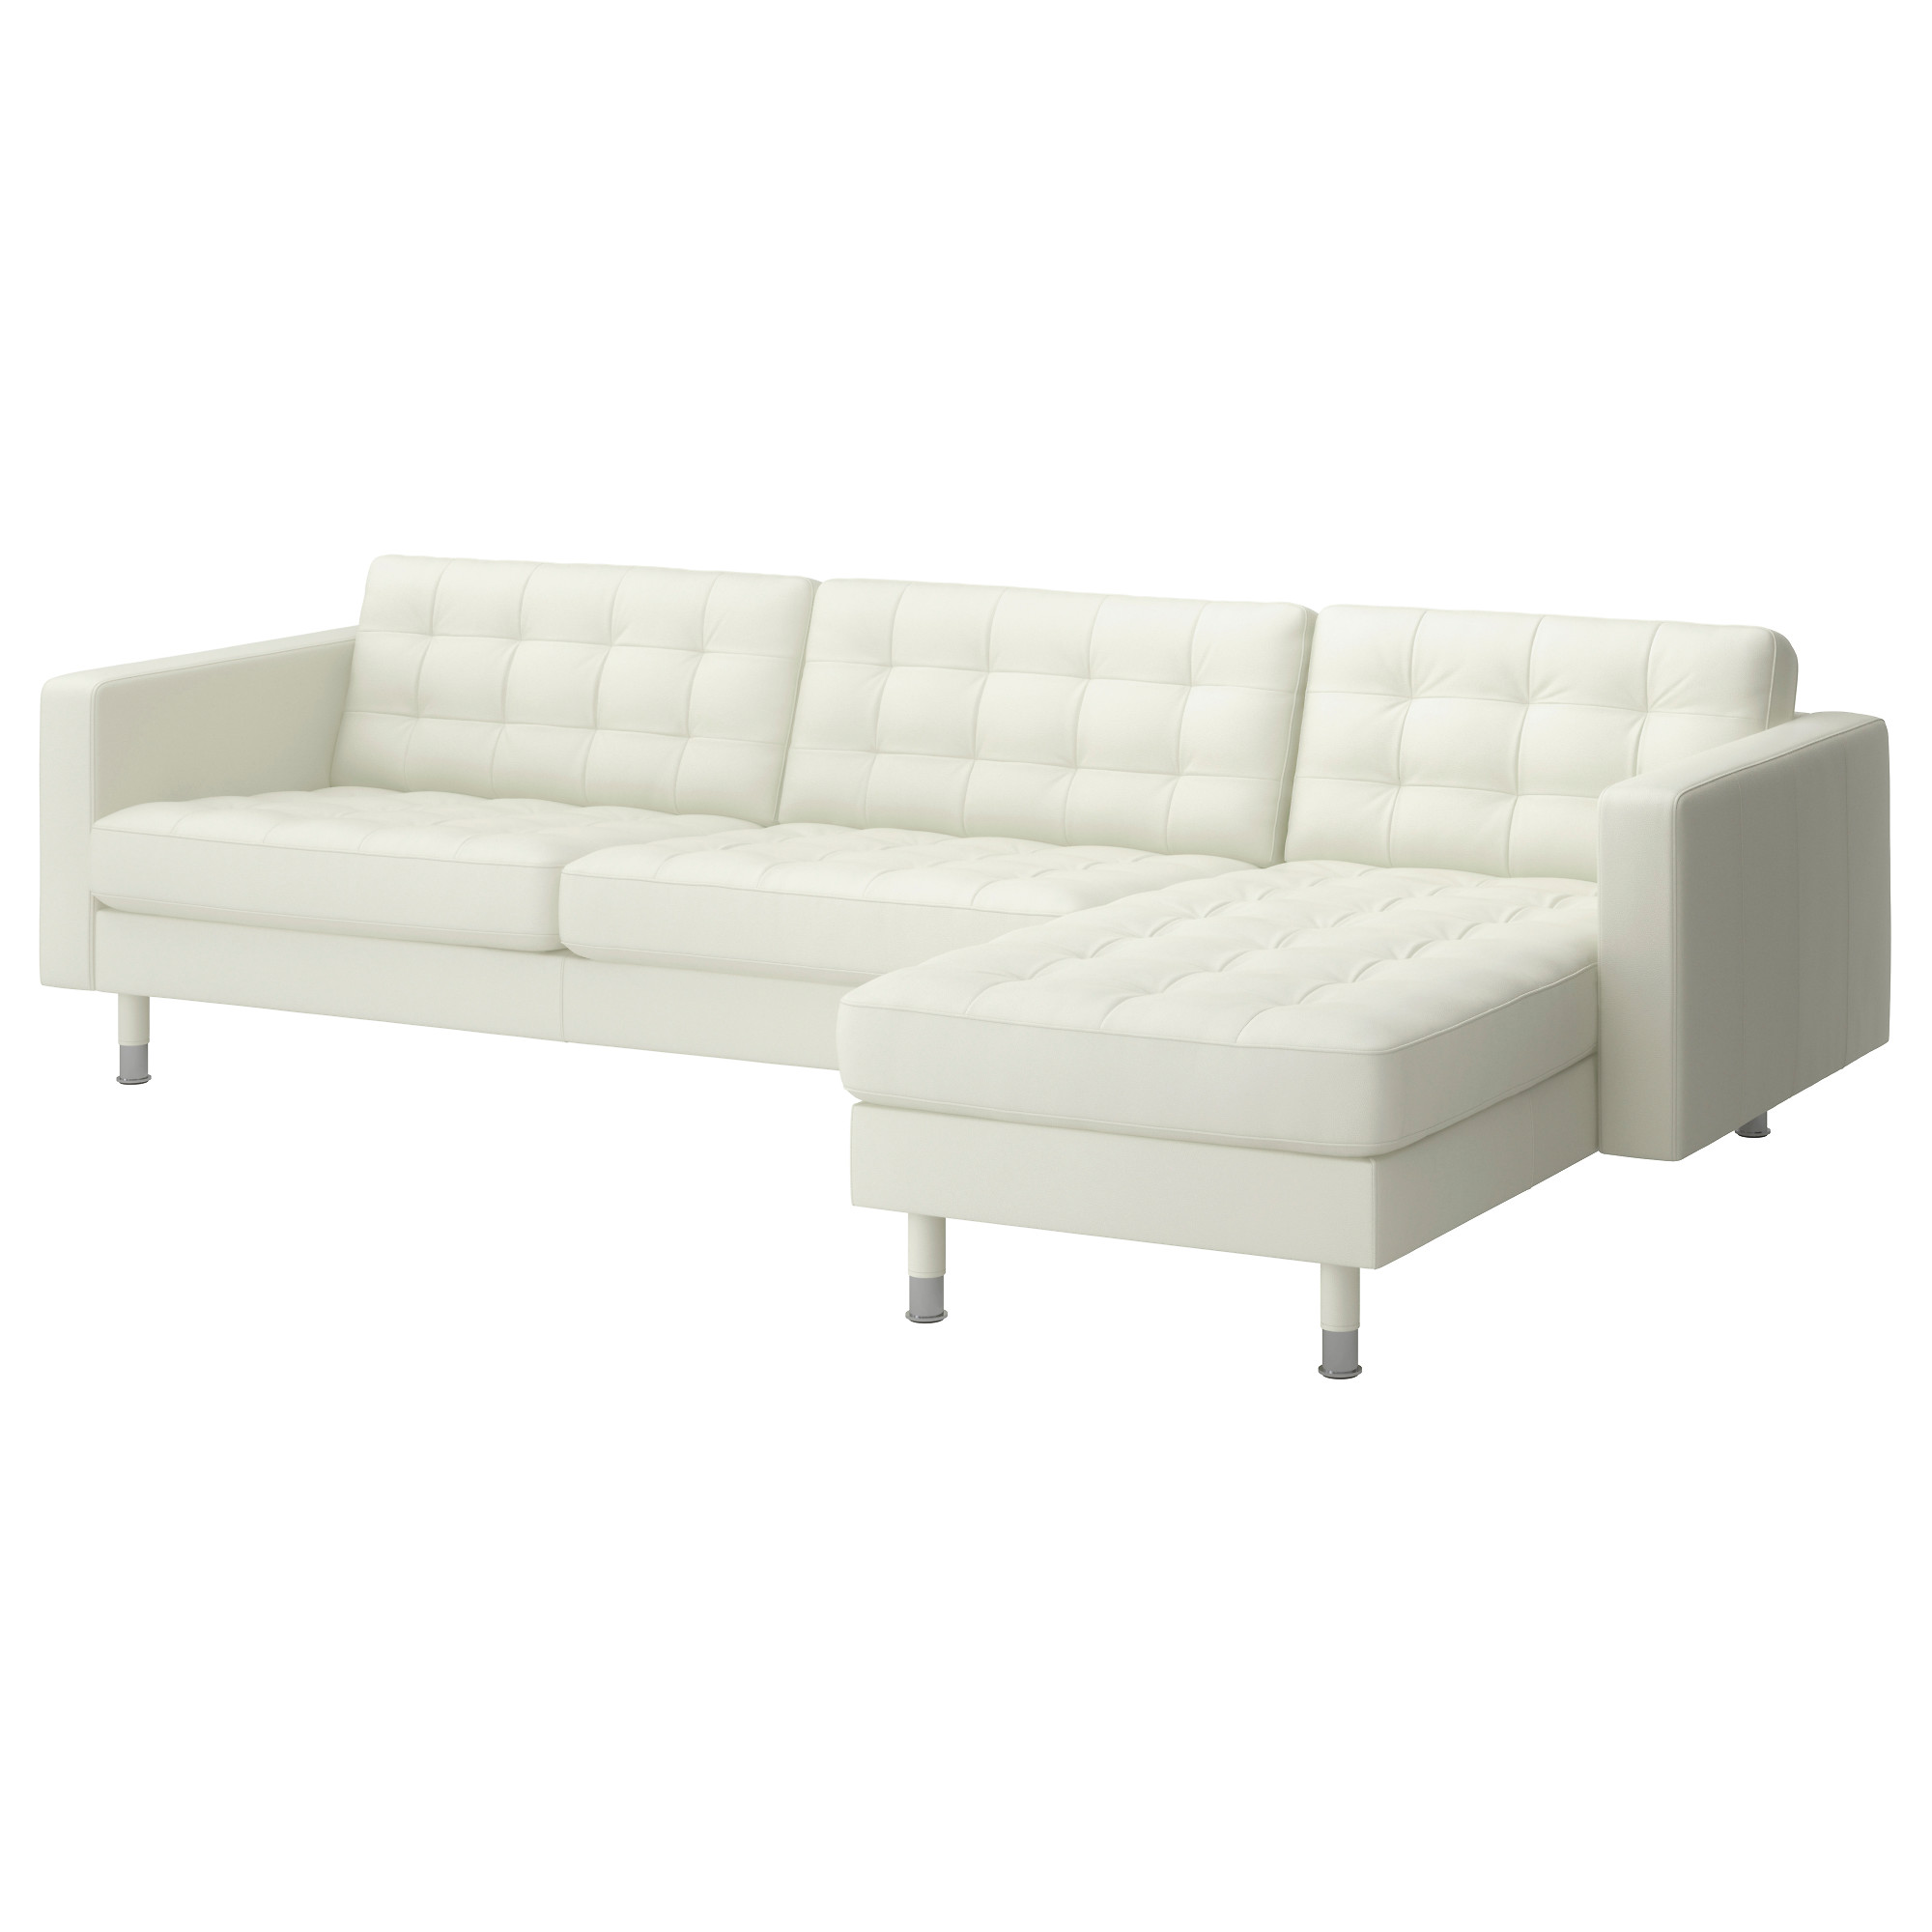 white leather sofa breathtaking white sofa cover pictures design ideas ... WFSFJTG